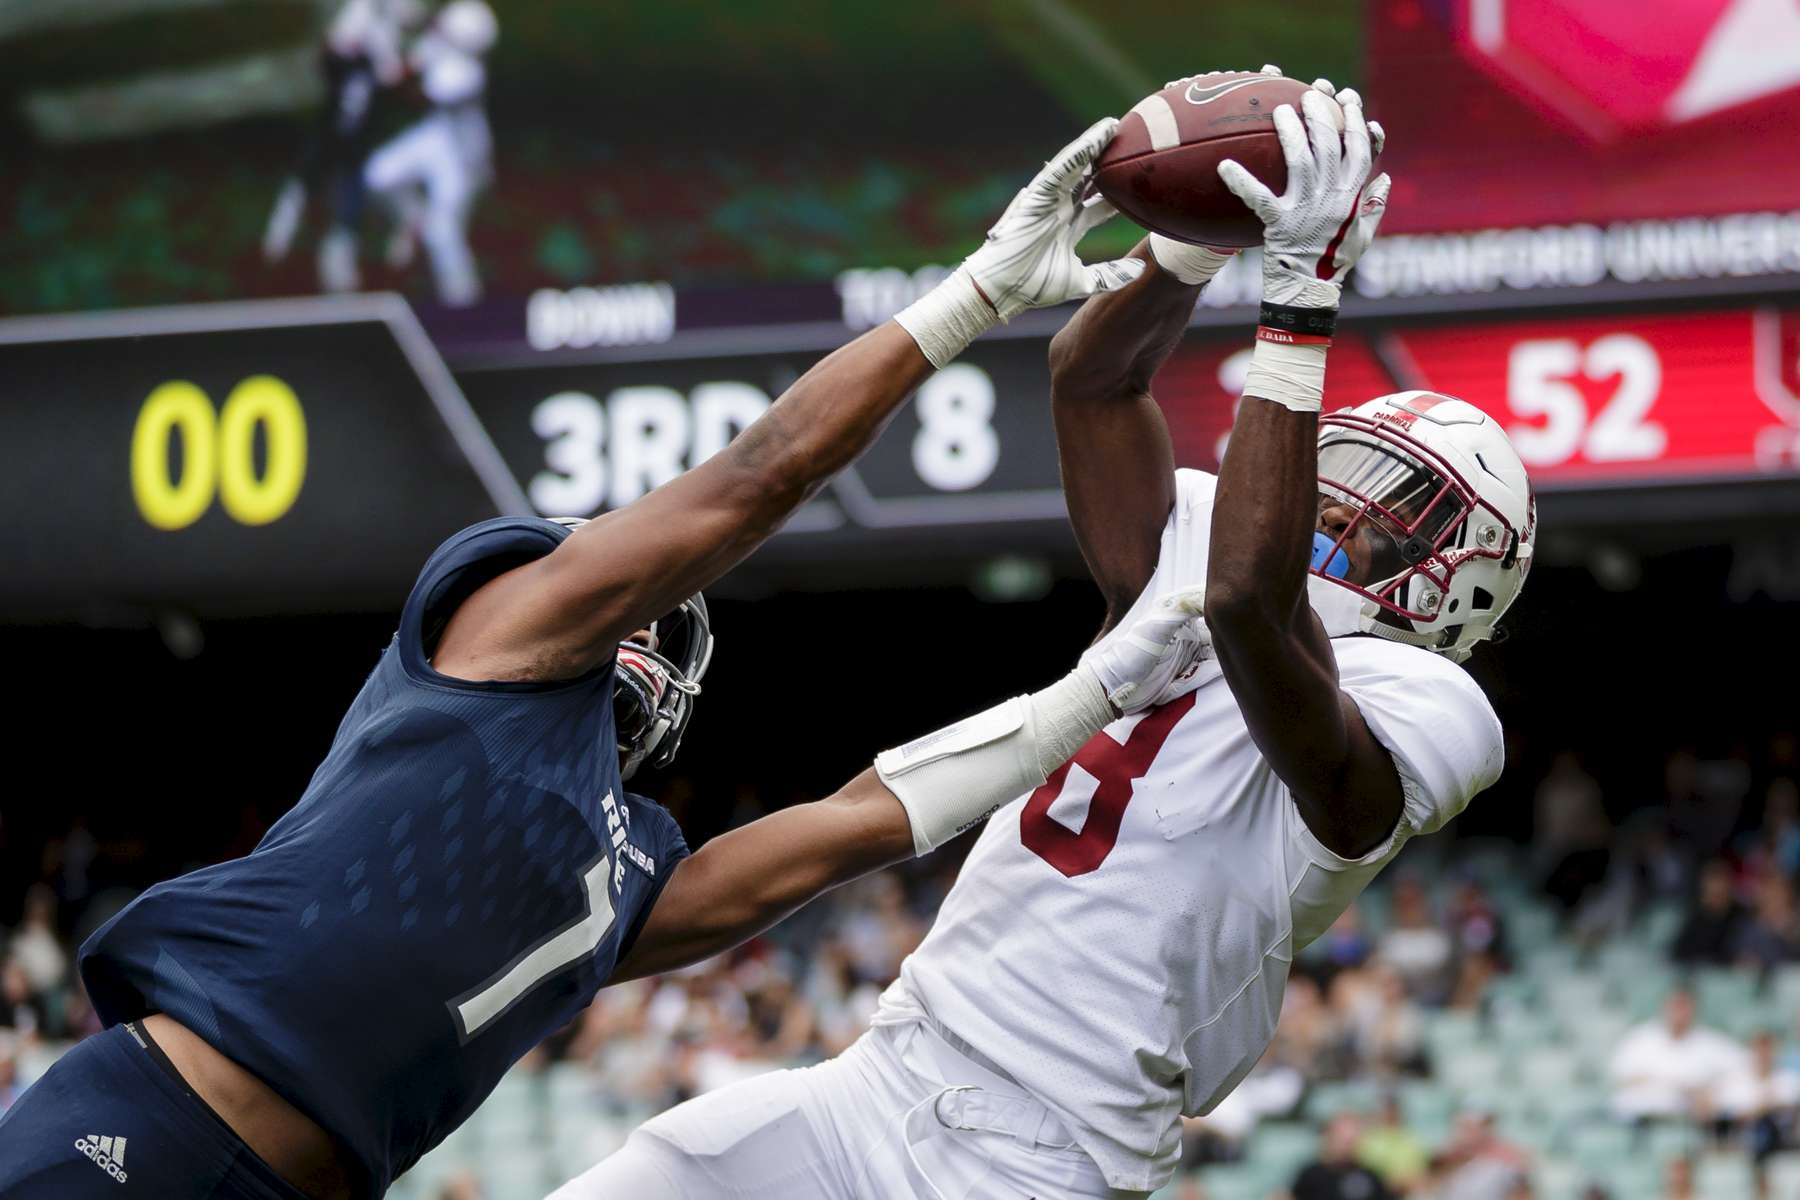 SYDNEY, NEW SOUTH WALES - AUGUST 27: Justin Reid of Stanford catches the ball as Justin Bickham of Rice attempts to spoil during the College Football Sydney Cup match between Stanford University (Stanford Cardinal) and Rice University (Rice Owls) at Allianz Stadium on August 27, 2017 in Sydney, Australia.  (Photo by Brook Mitchell/Getty Images)